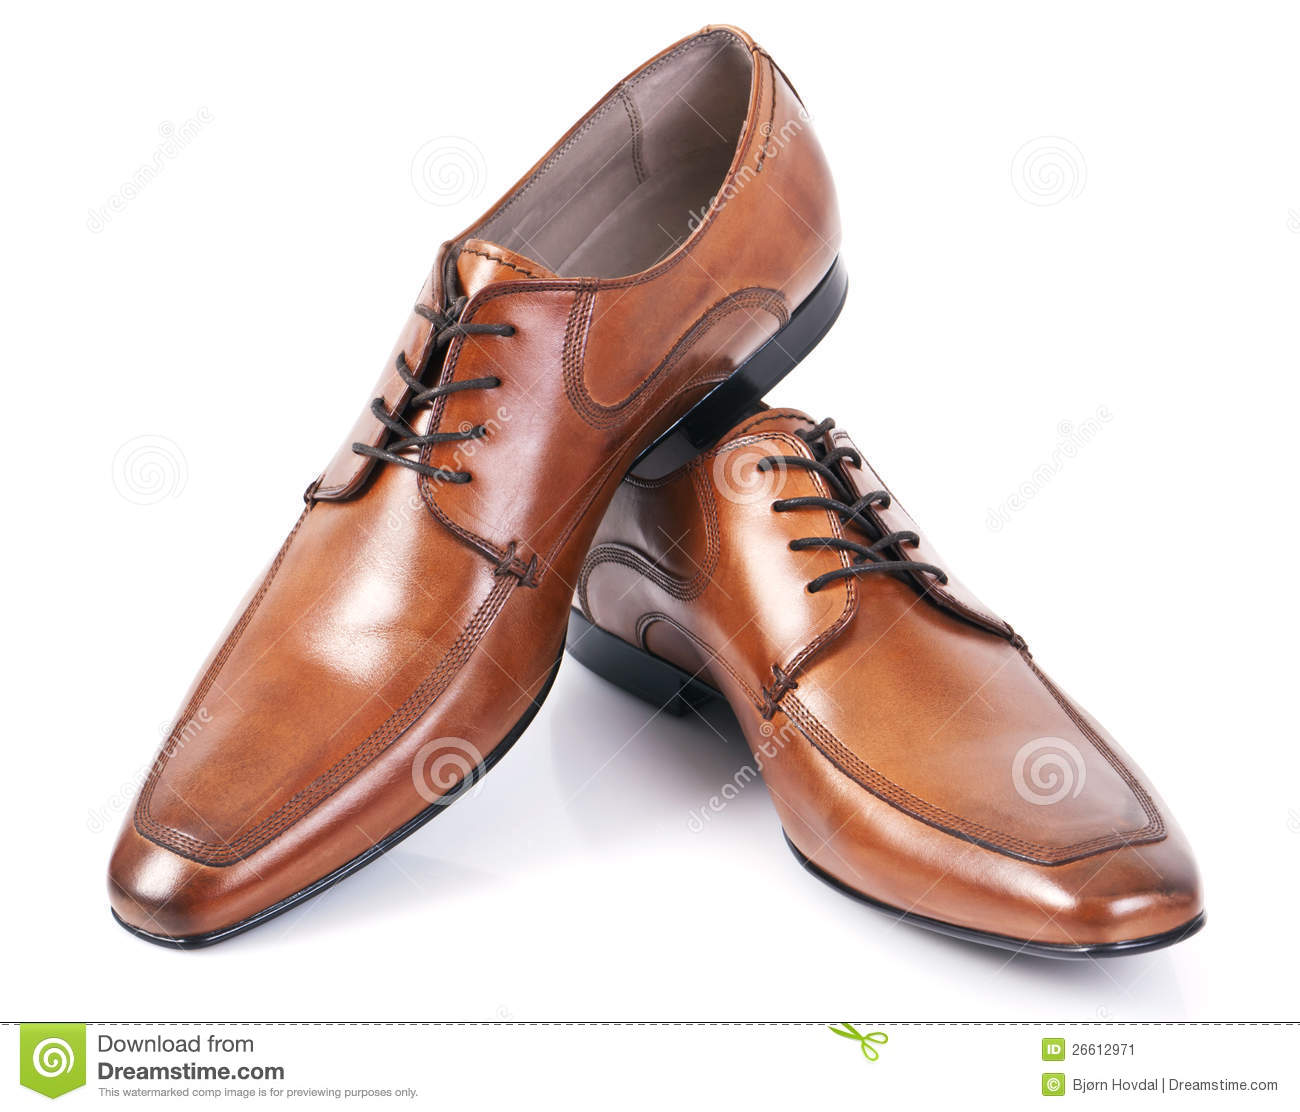 Leather Shoes Stock Image - Image: 26612971